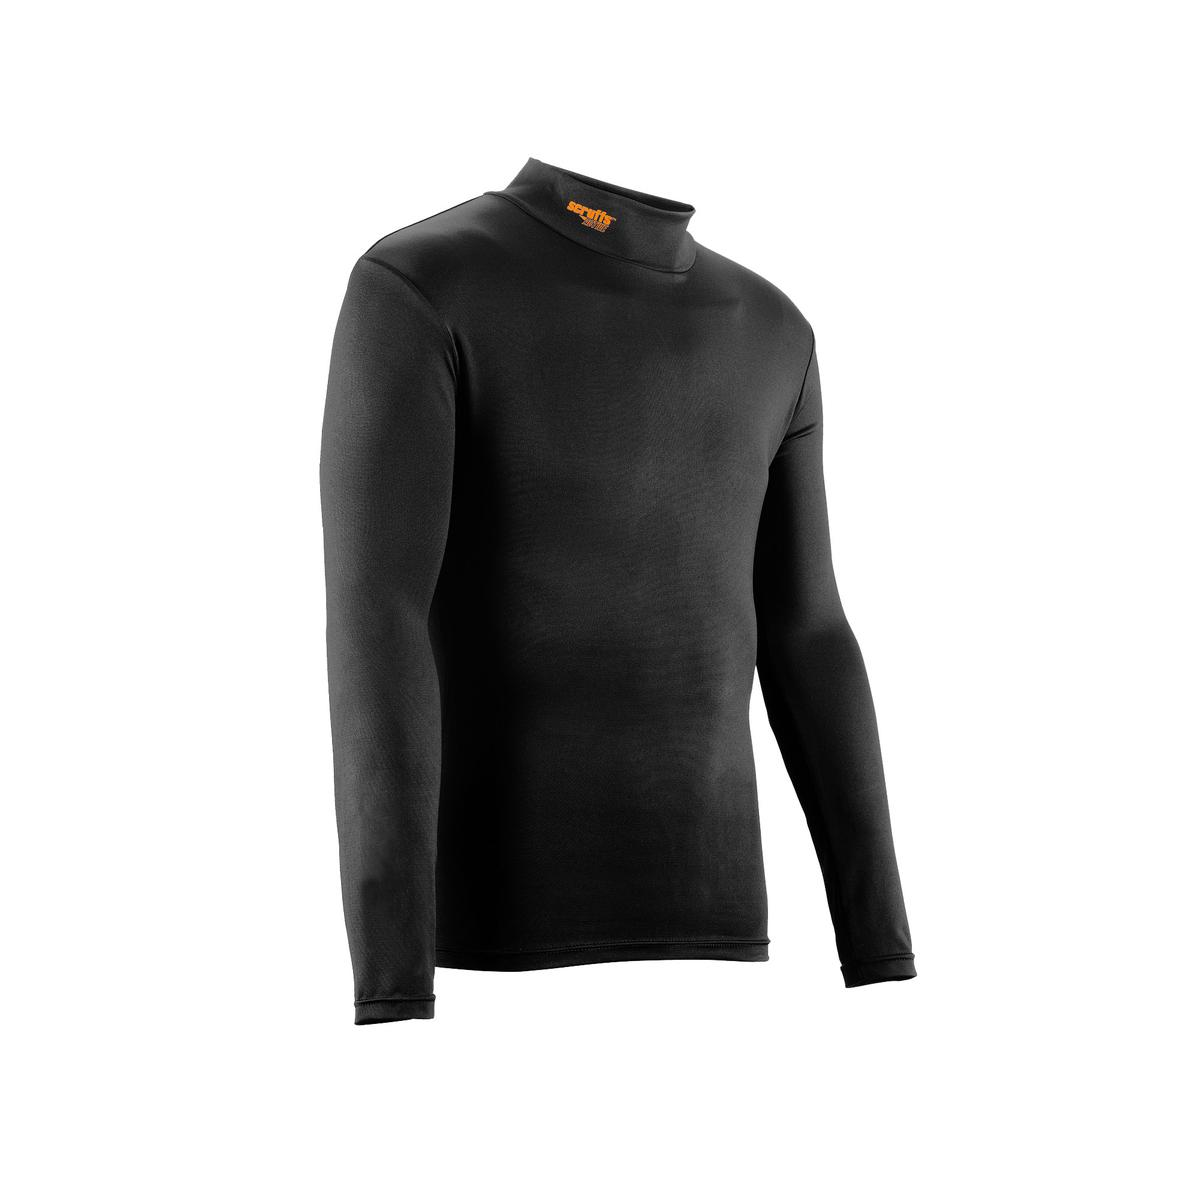 Scruffs Pro Baselayer Top